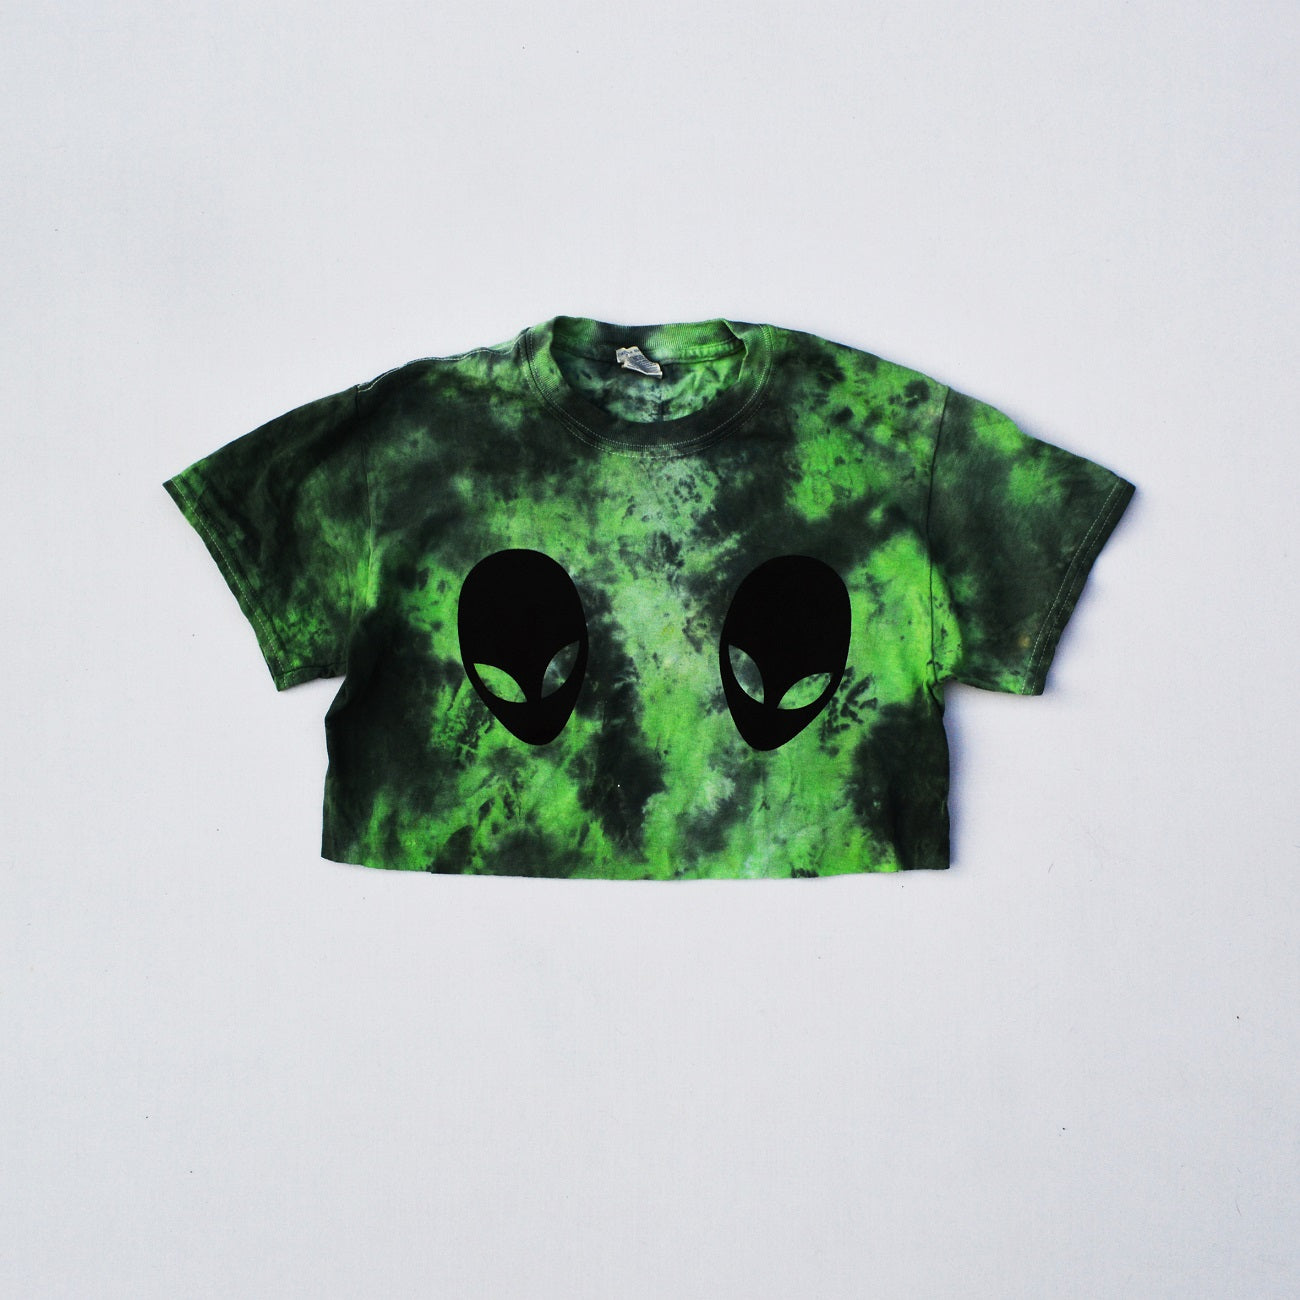 Alien Boobs Green/Black Tie Dye Crop Top